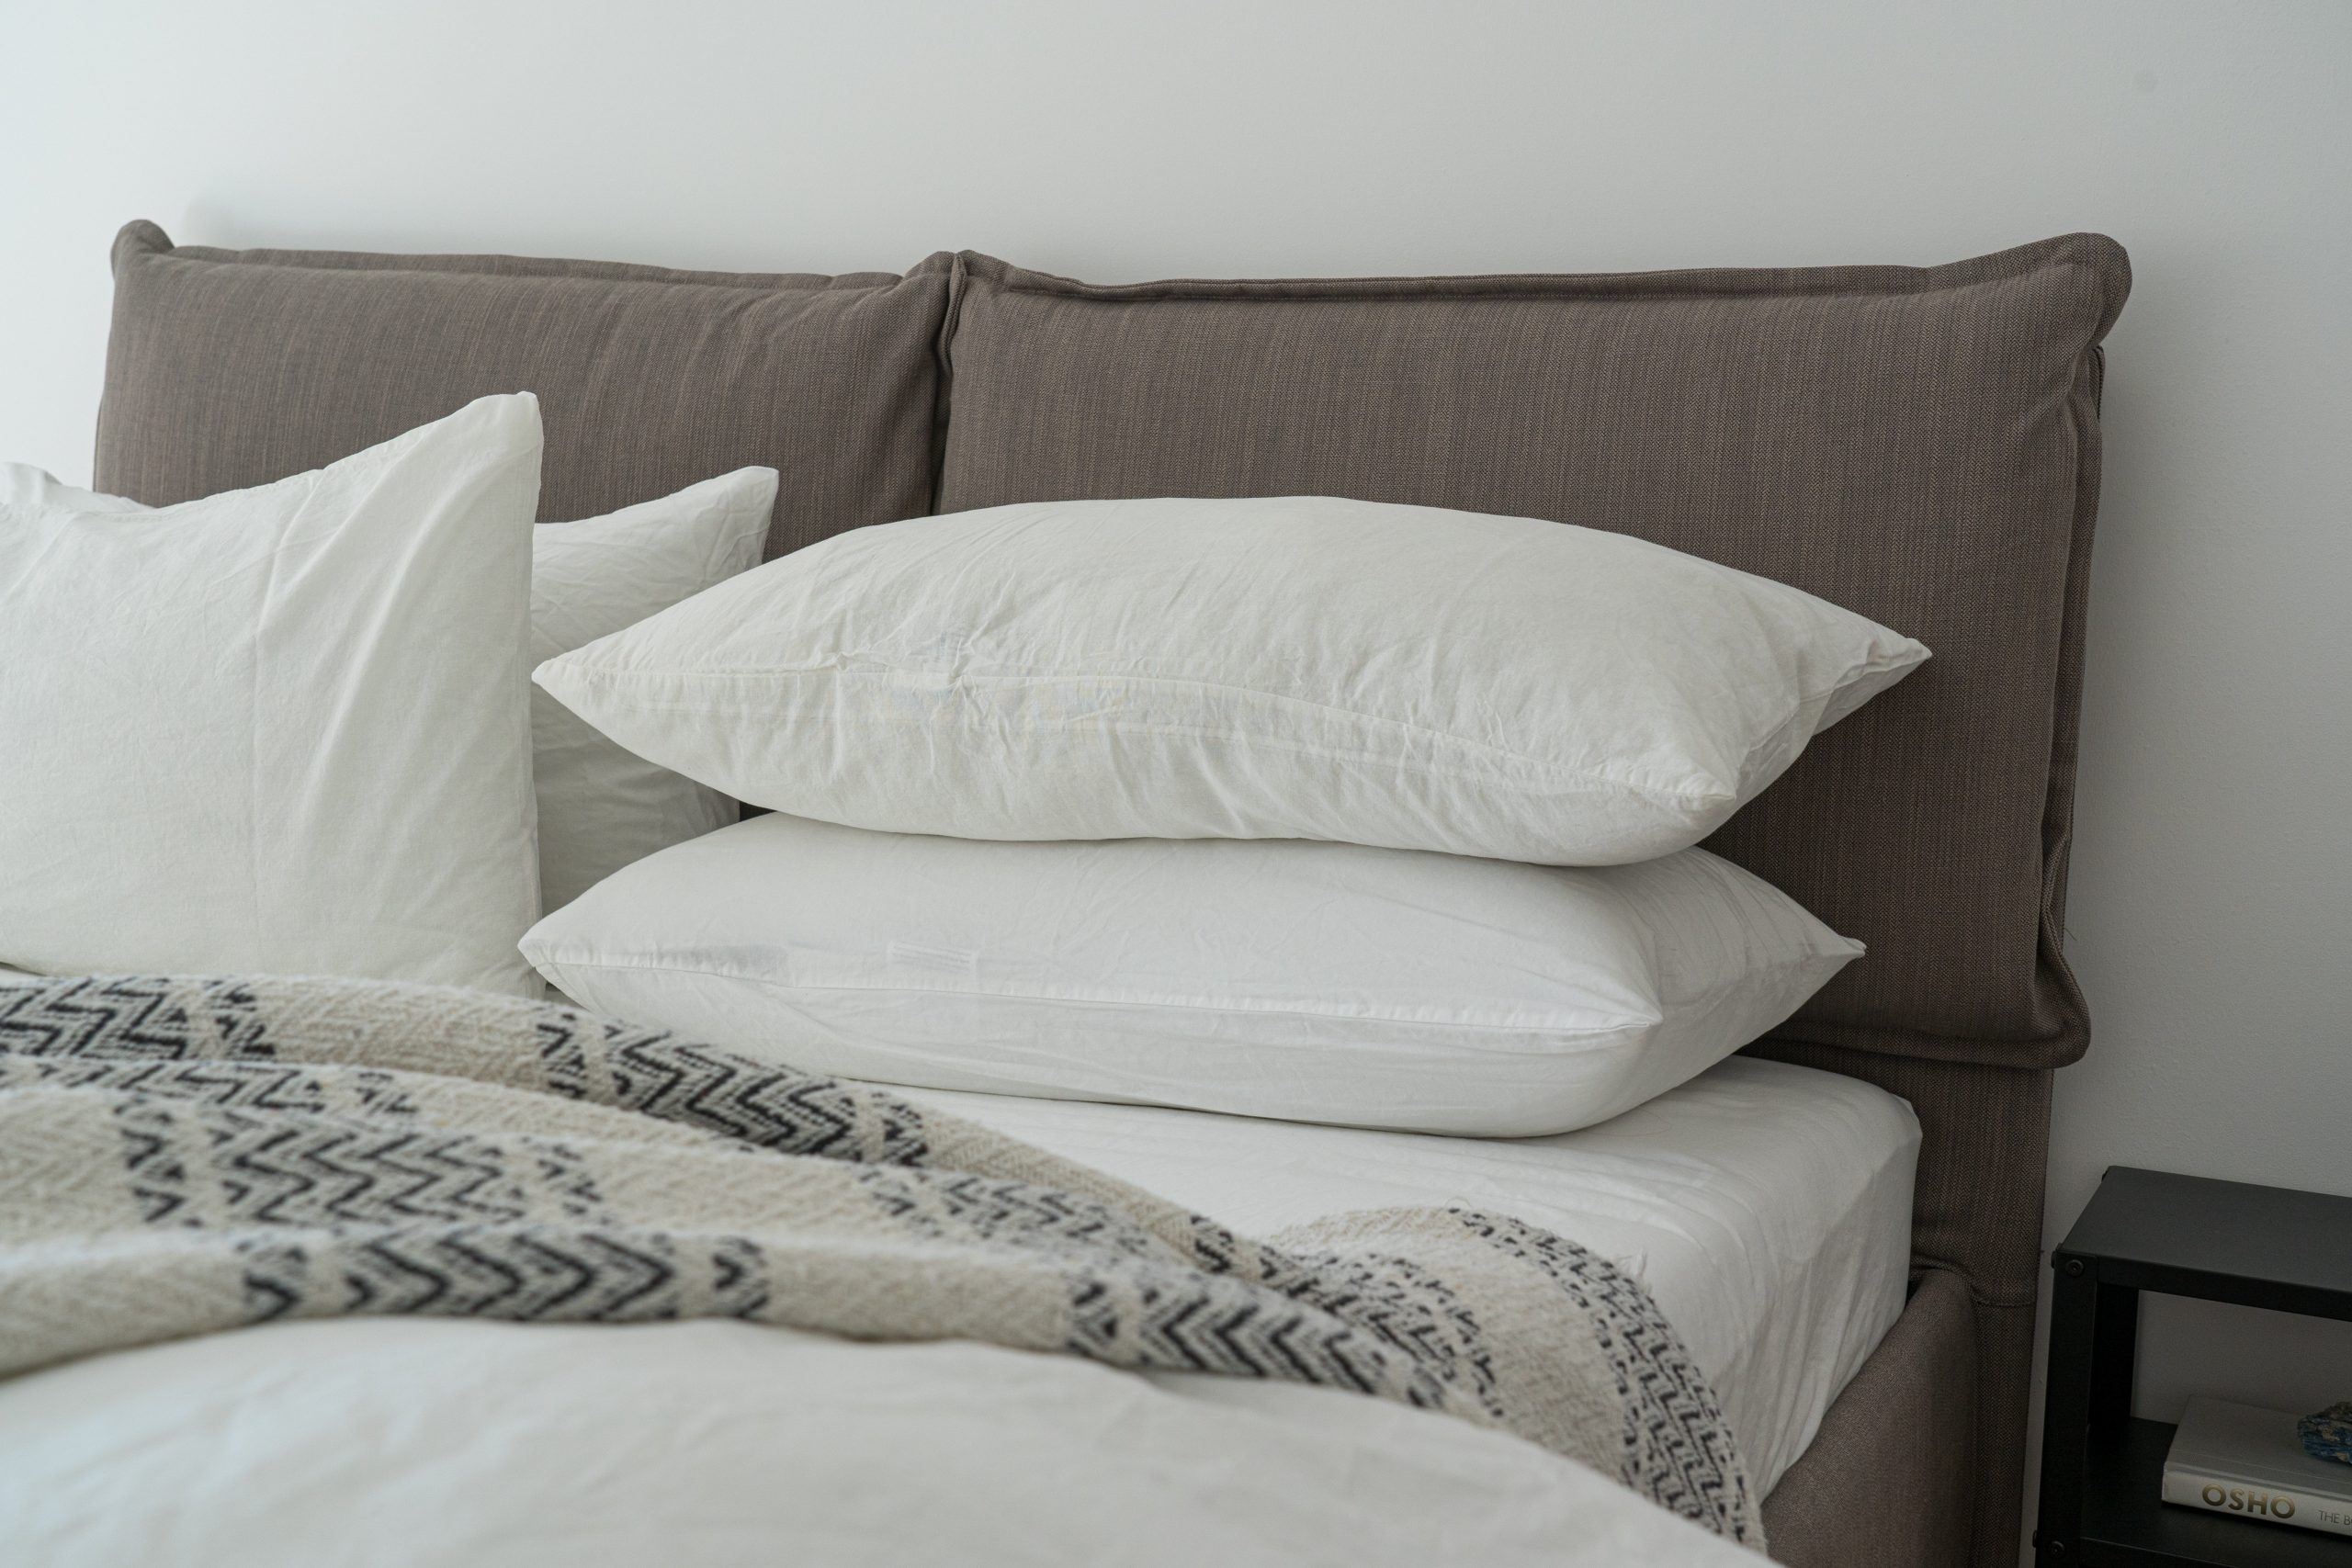 Looking for a really firm mattress? Here are some options.